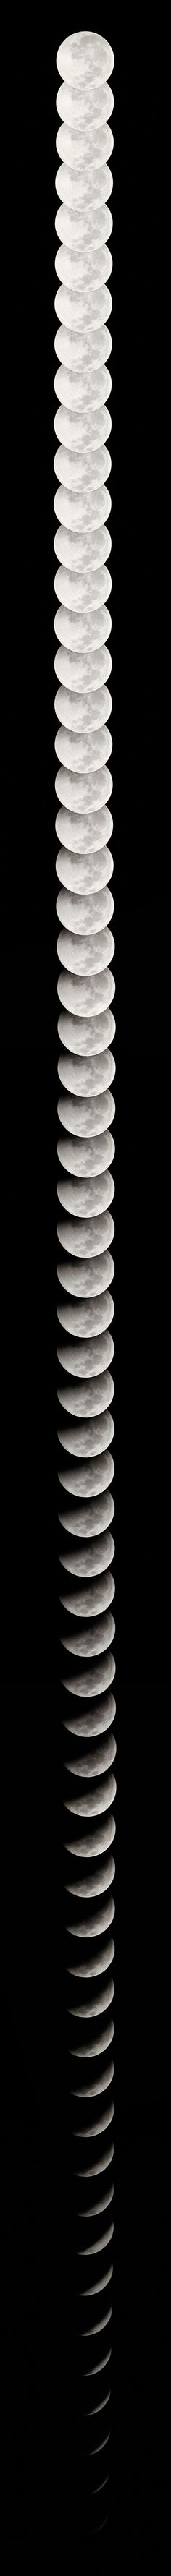 Very cool!   Lunar Eclipse 2010, via Daily Dose of Imagery